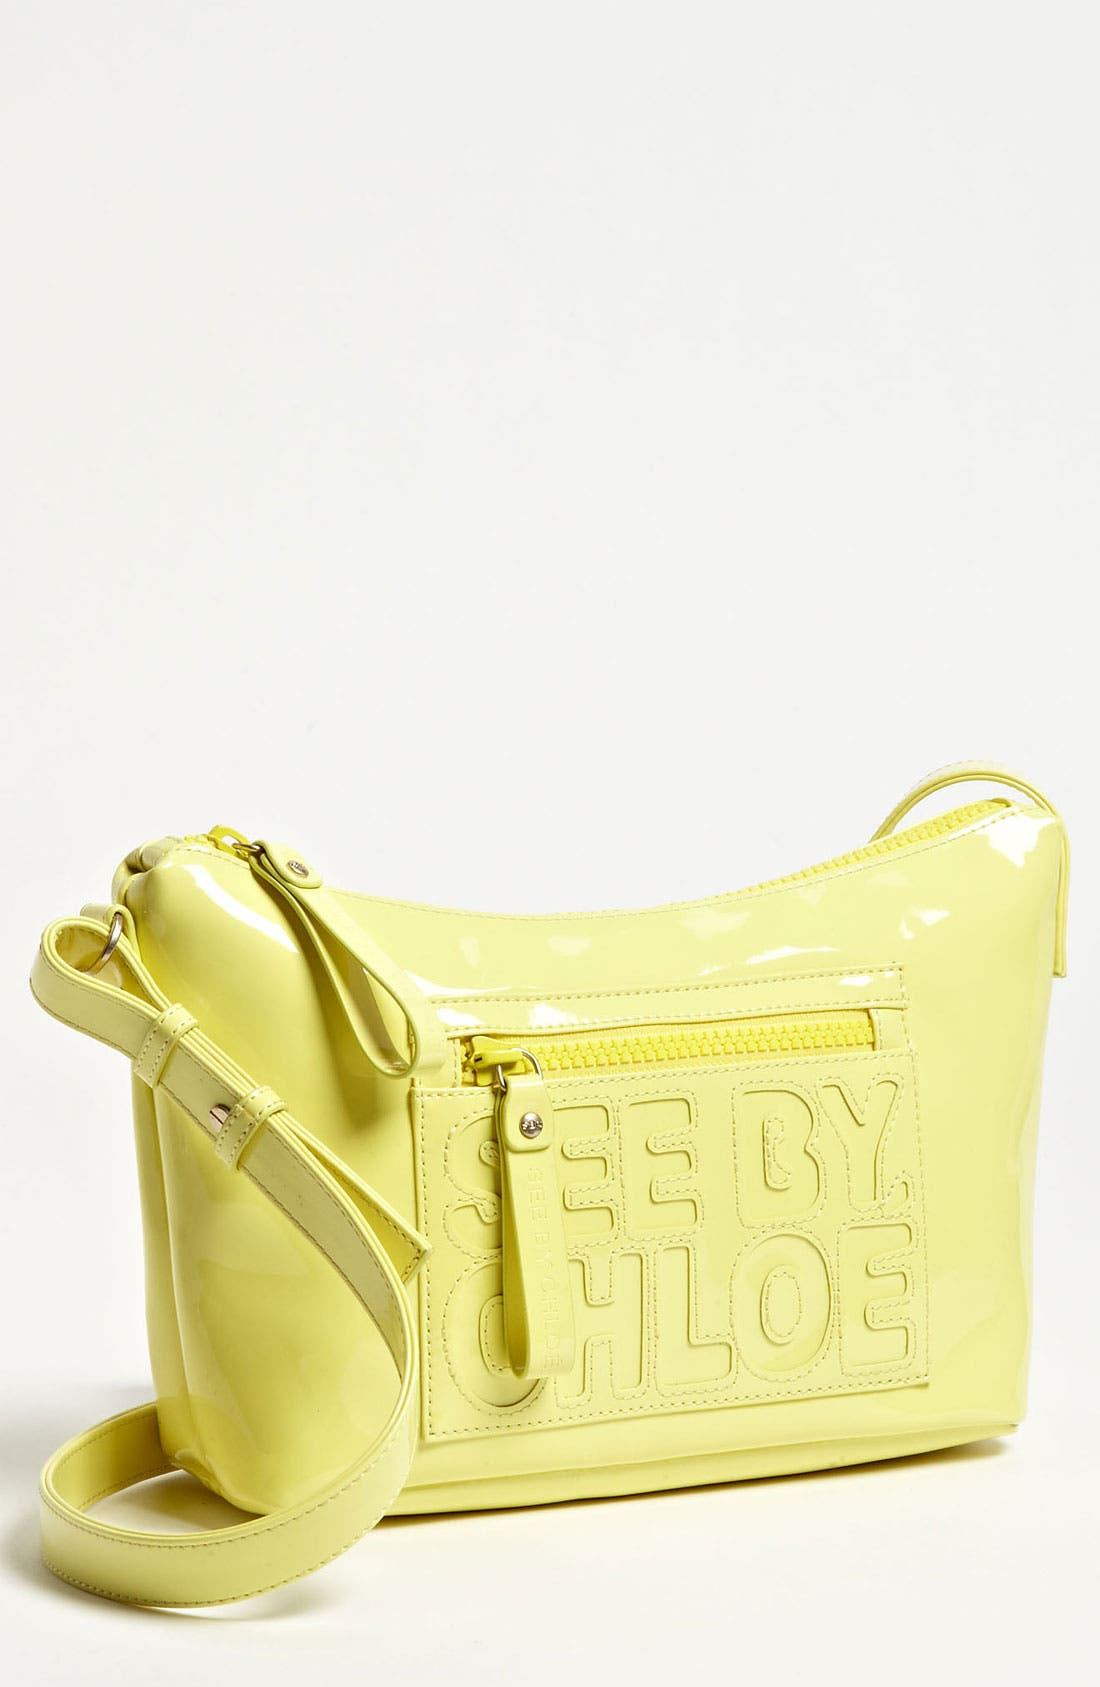 Main Image - See by Chloé 'Zip File' Crossbody Bag